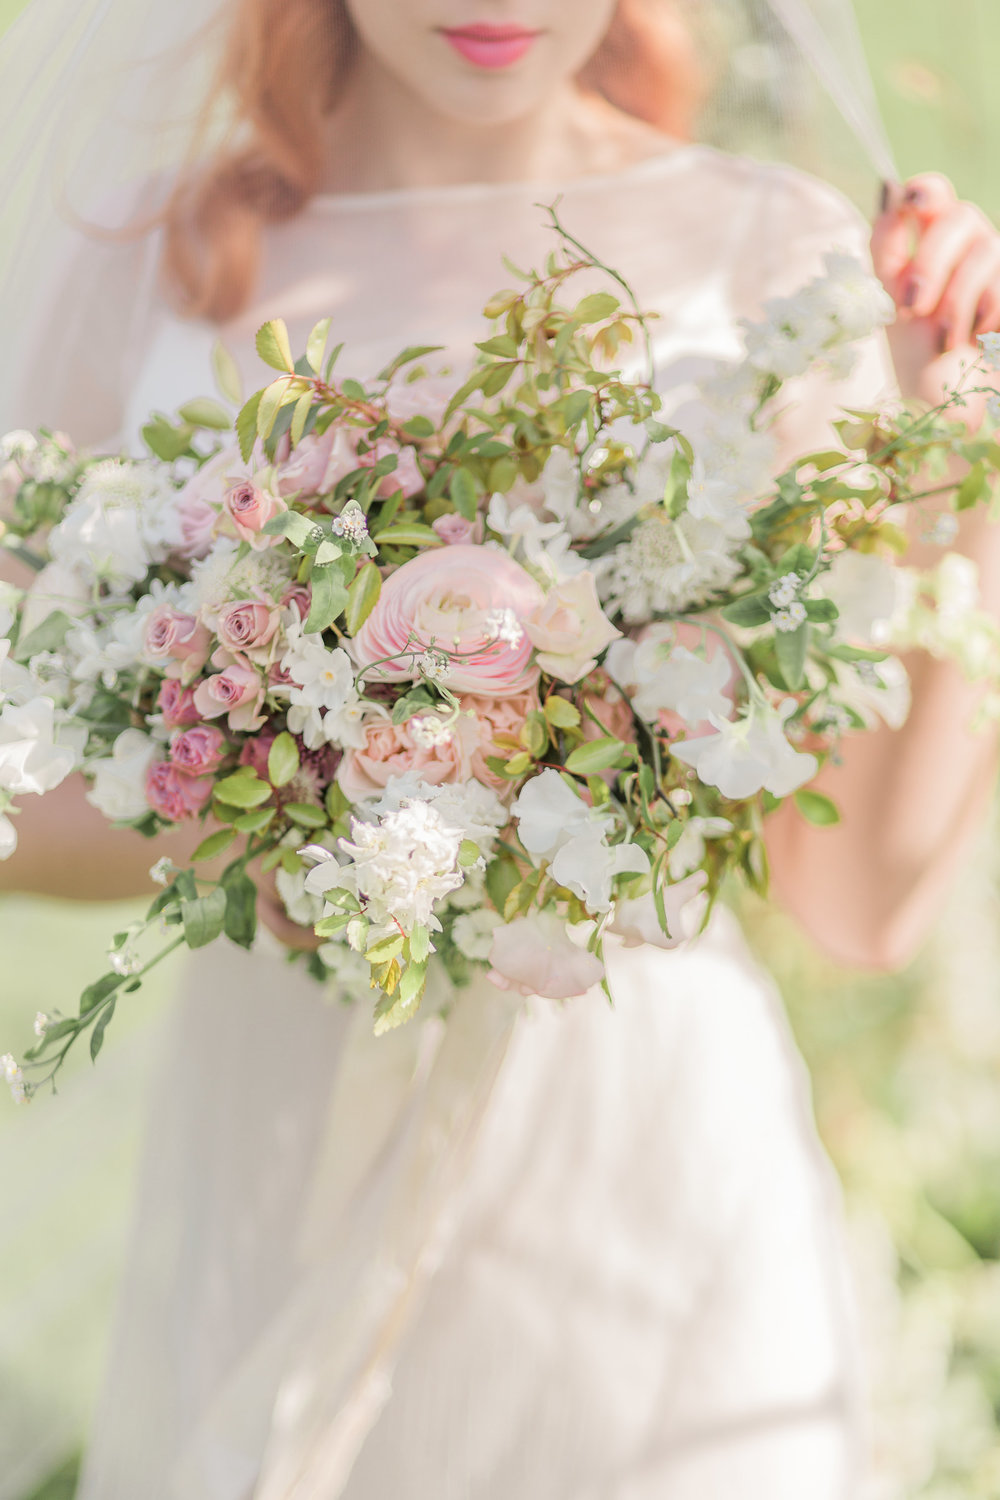 pink ranunculus bouquet by kent flower school jennifer pinder at Chafford Park wedding venue